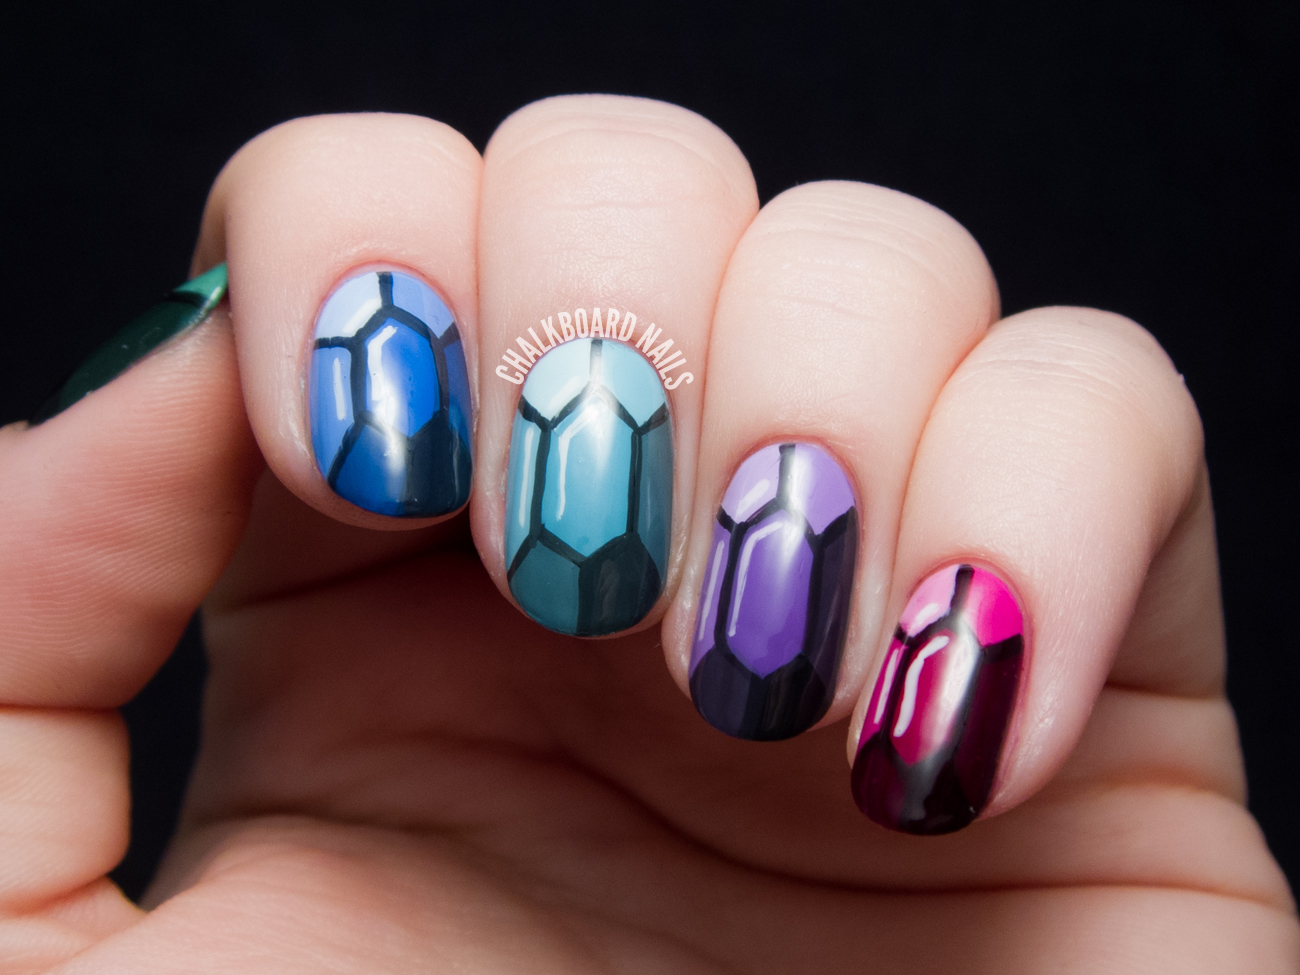 Nails Art: TUTORIAL: Precious Gems Nail Art Inspired By The Ring And